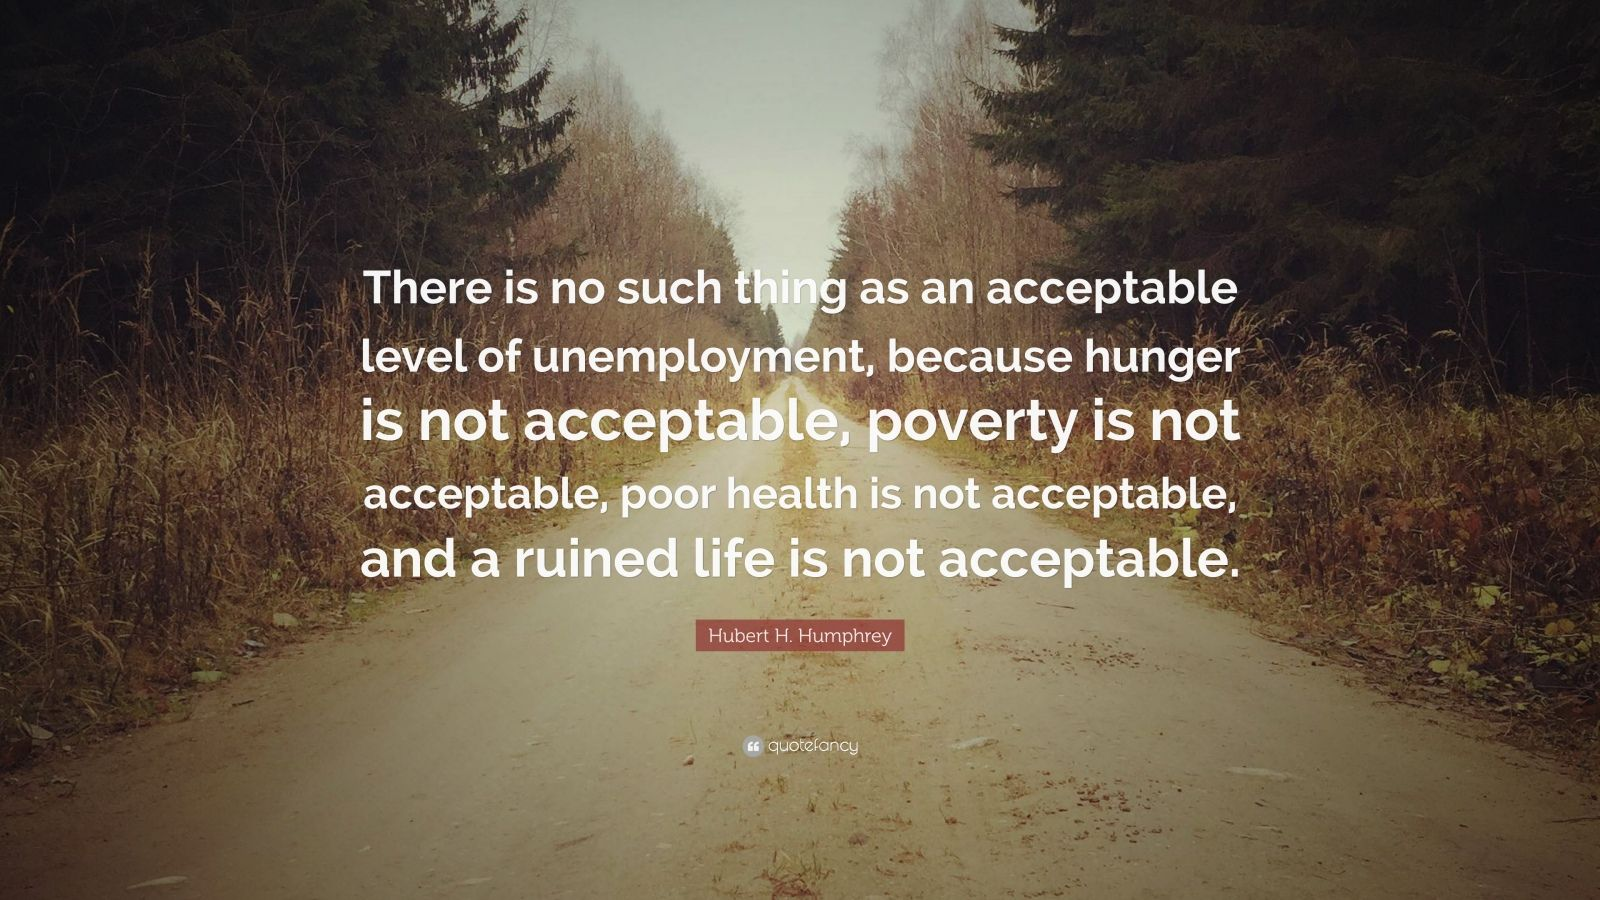 "Hubert H. Humphrey Quote: ""There is no such thing as an acceptable level of unemployment, because hunger is not acceptable, poverty is not acceptable, poor health is not acceptable, and a ruined life is not acceptable."""